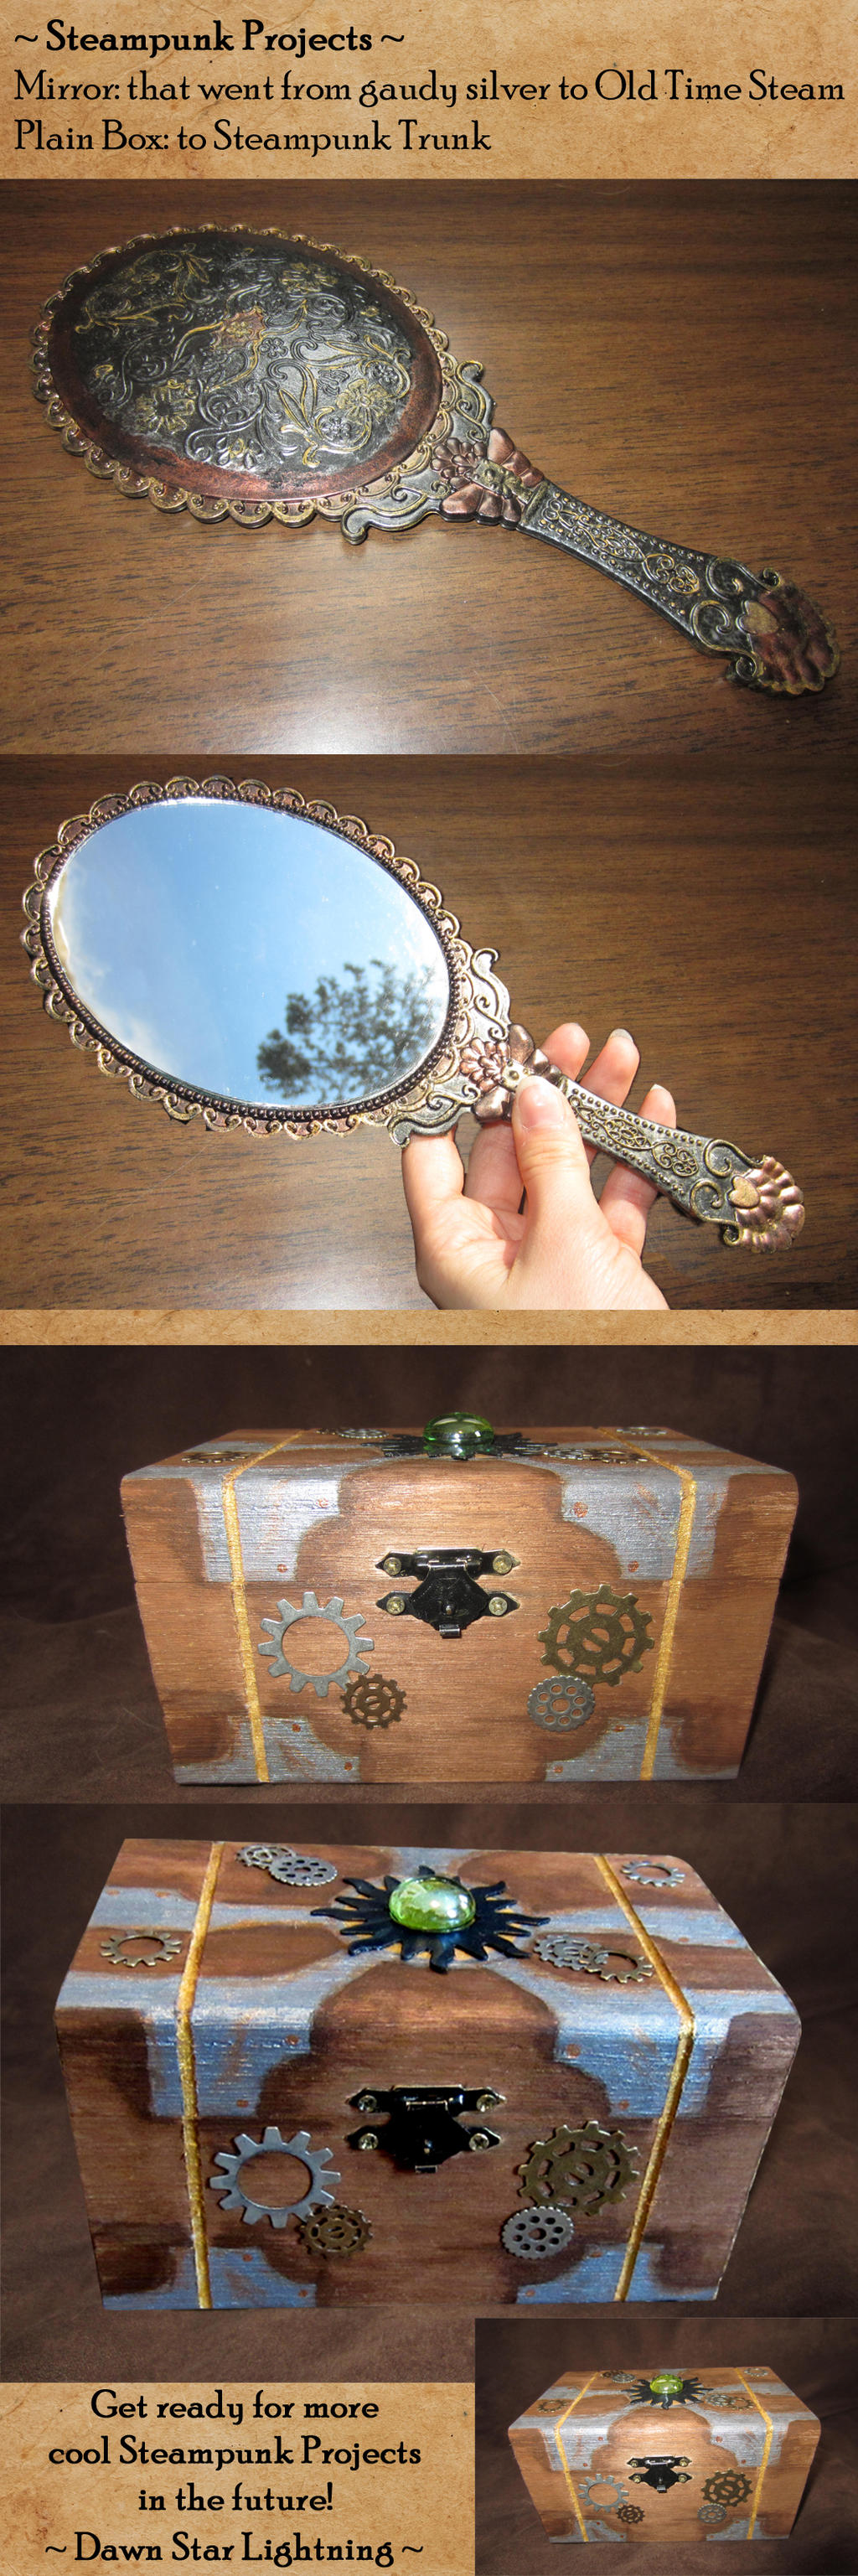 Steampunk projects by dawnstarlightning on deviantart for Steampunk arts and crafts